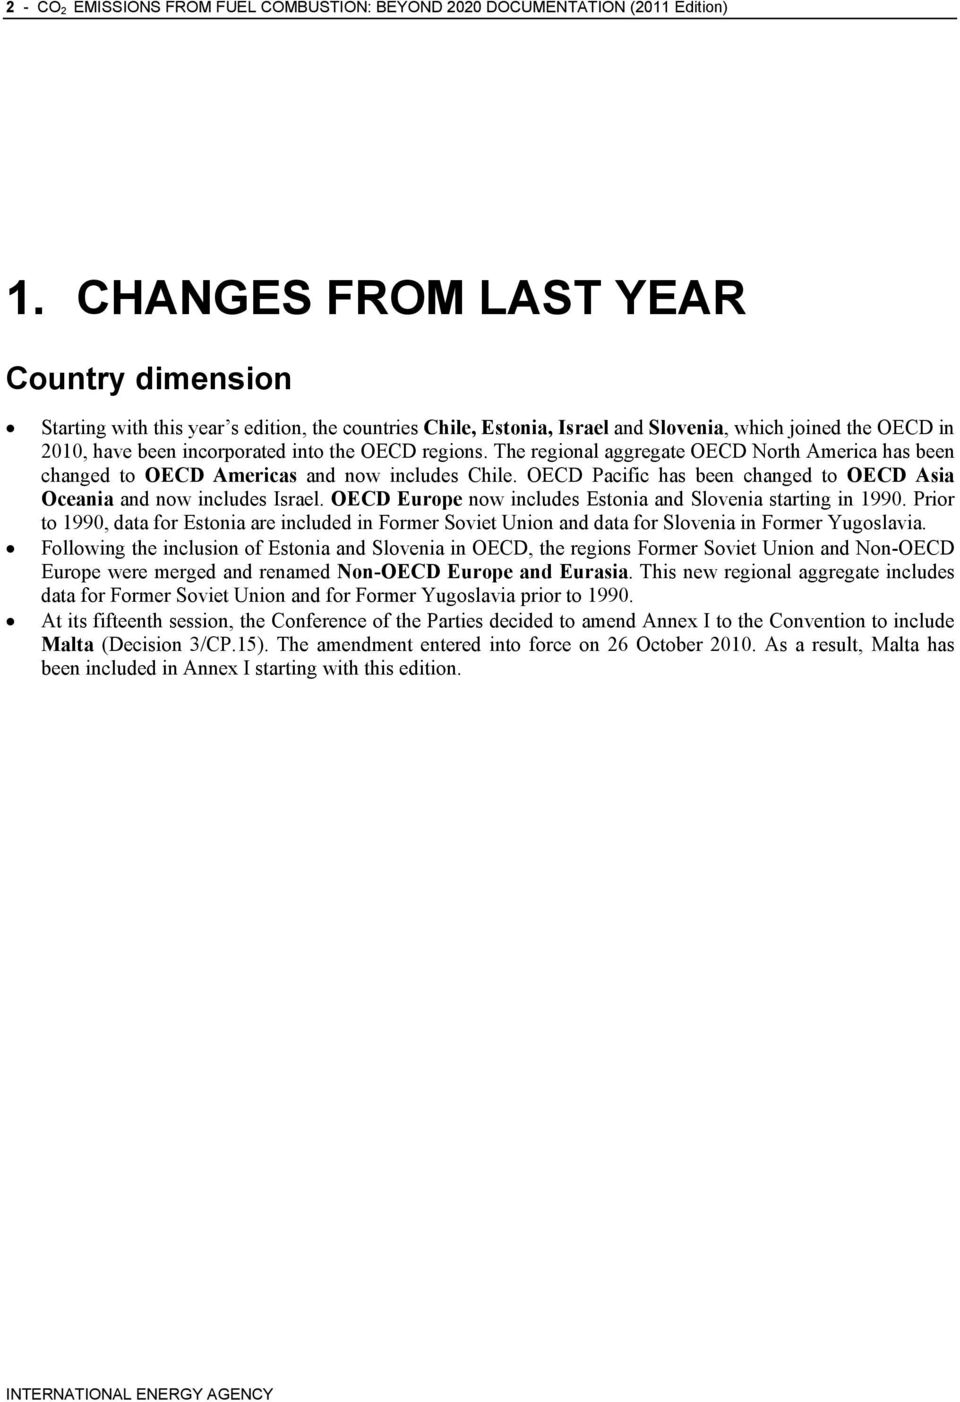 regions. The regional aggregate OECD North America has been changed to OECD Americas and now includes Chile. OECD Pacific has been changed to OECD Asia Oceania and now includes Israel.